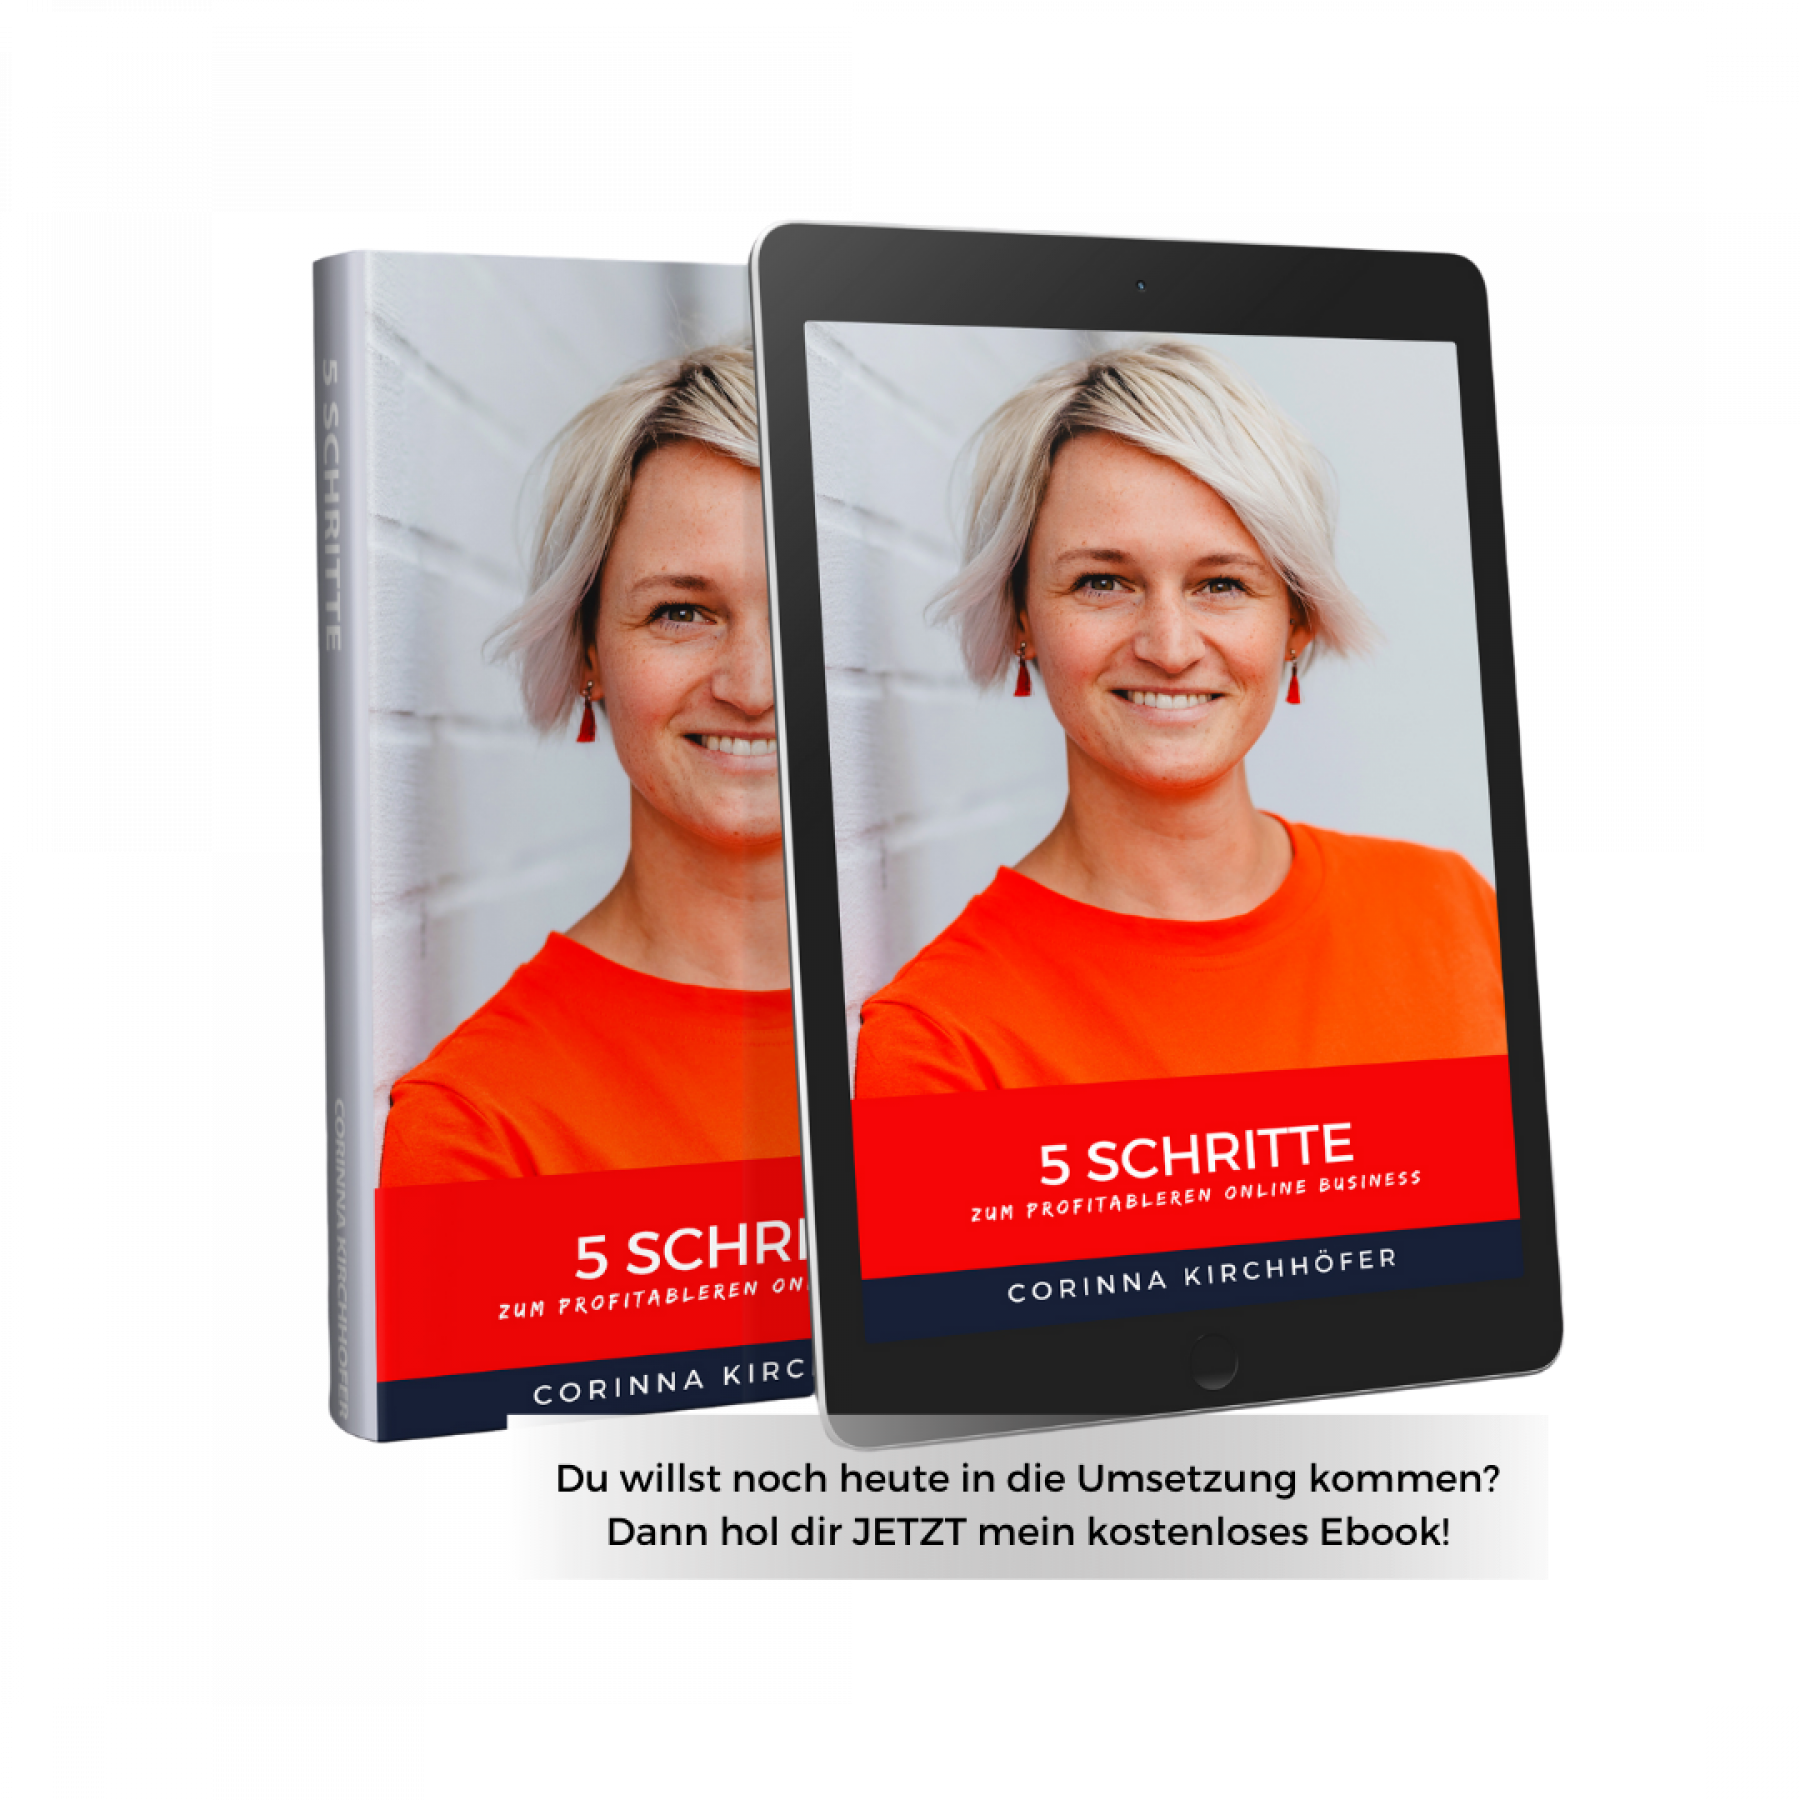 Corinna Kirchhöfer Gebhardshain Business Network Marketing Ebook profitabel Networker